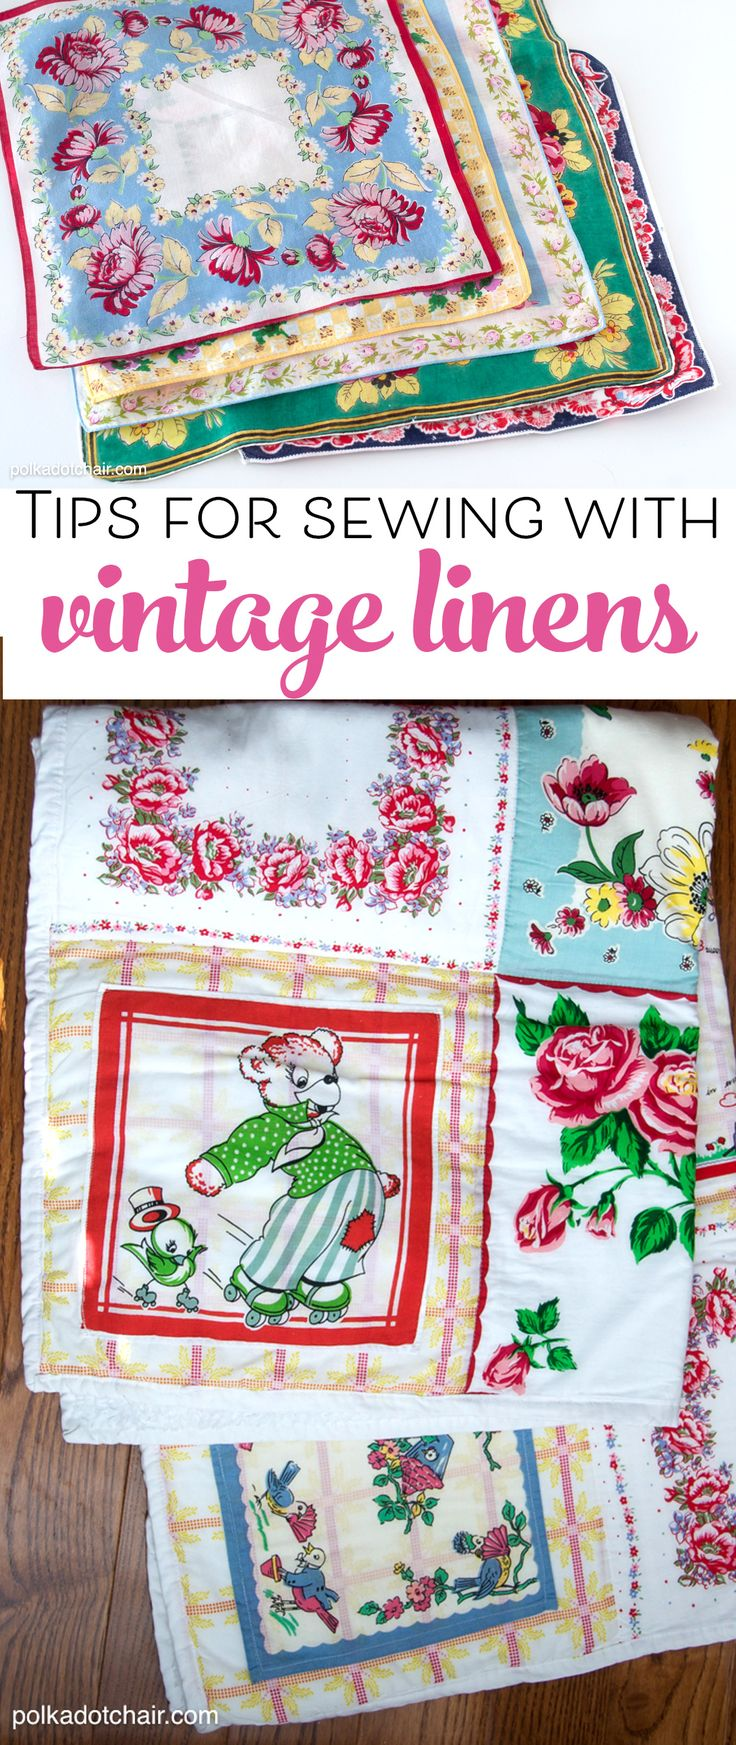 Tips for sewing with Vintage linens (cleaning tips, care tips and project ideas)